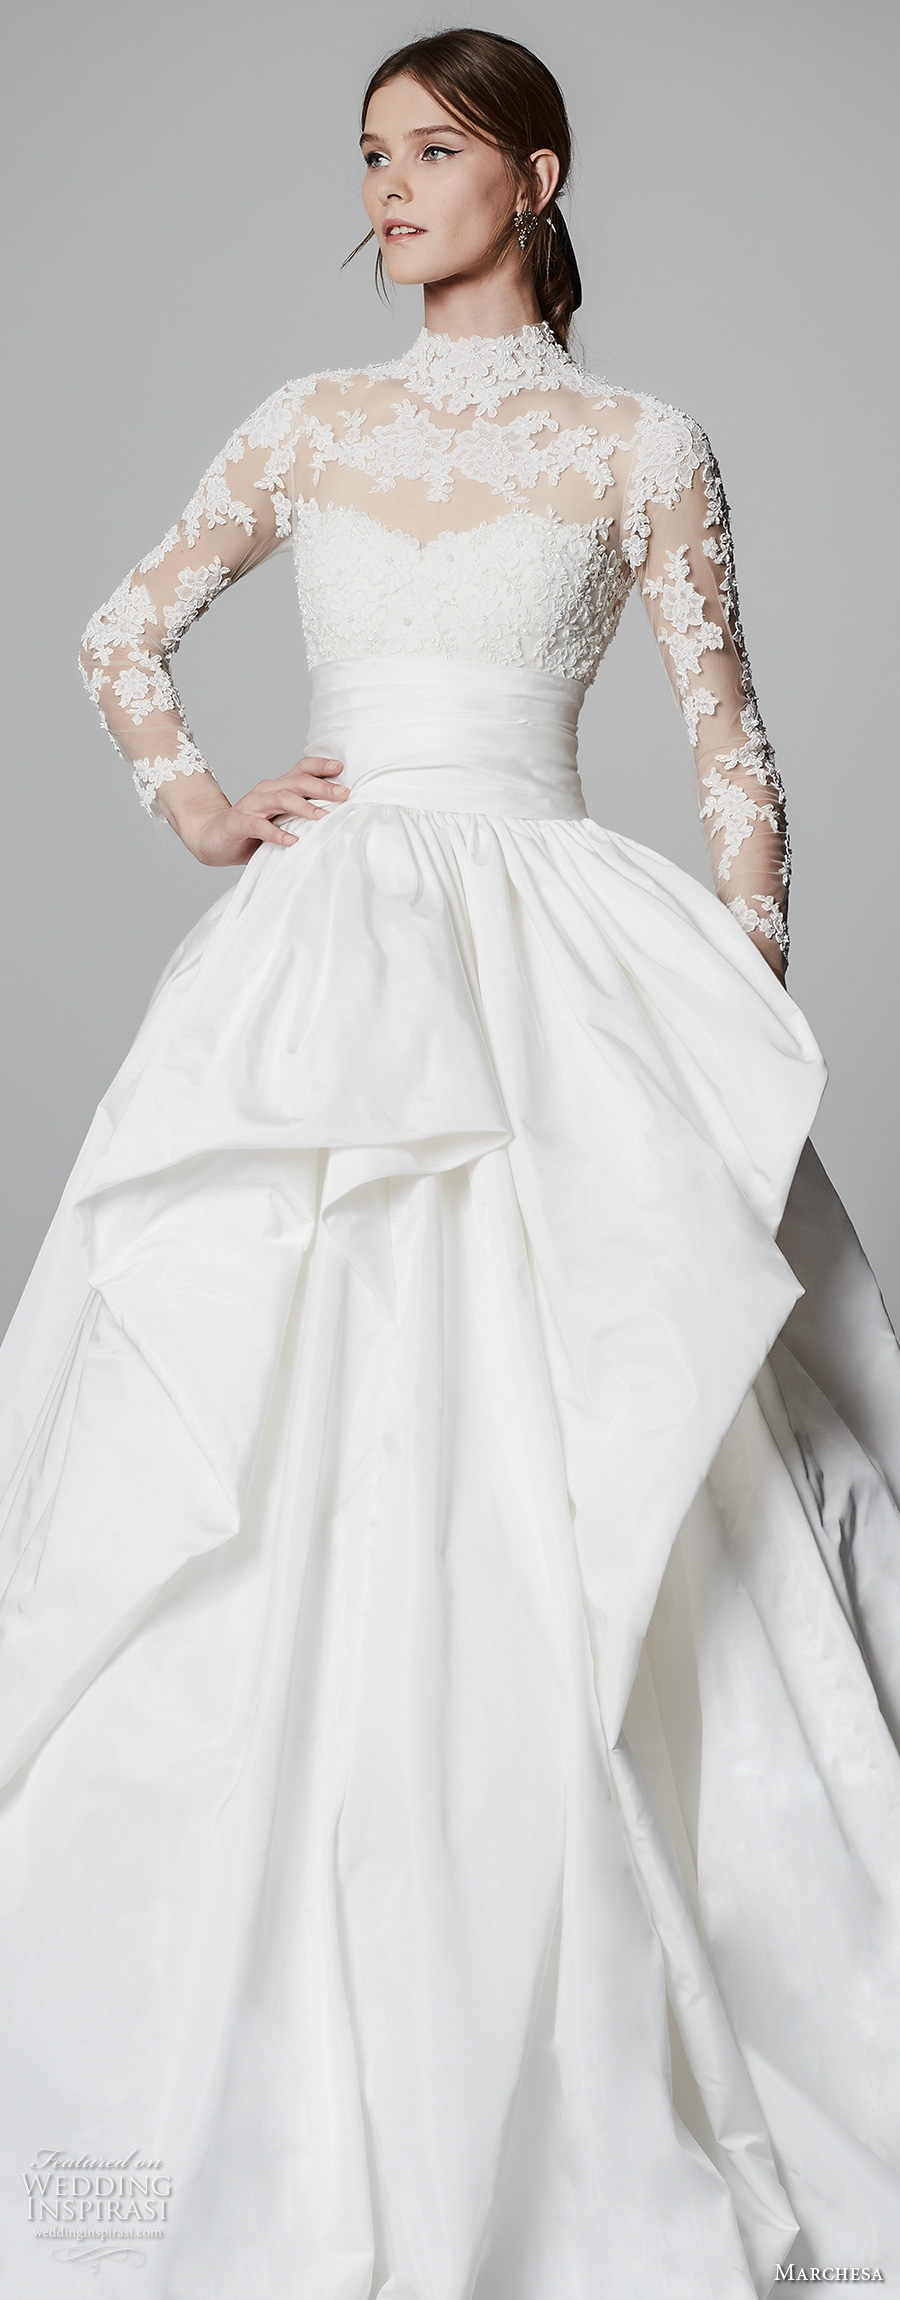 marchesa spring 2018 bridal long sleeves illusion high neck sweetheart neckline heavily embellished princess ball gown a  line wedding dress sheer lace back chapel train (11) zv